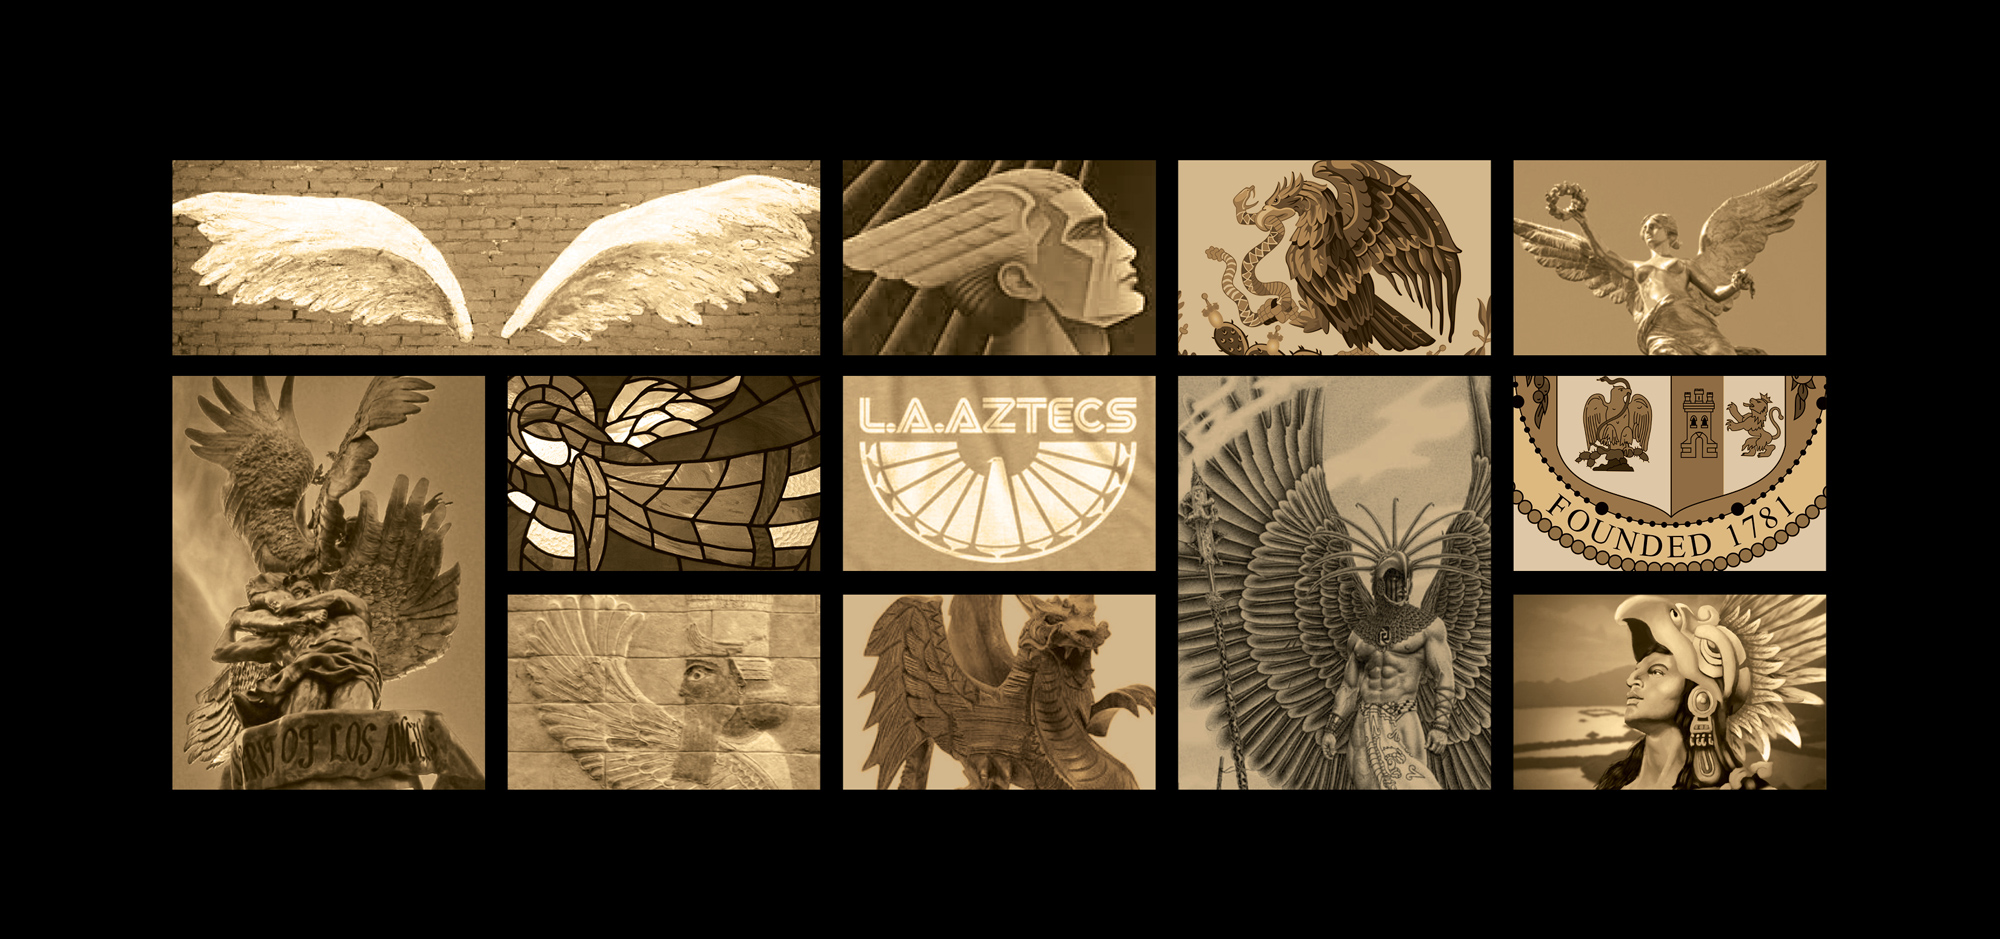 LAFC Badge, LAFC Logo, Matthew Wolff Design, Soccer, Football, Crest, Badge, Logo, Los Angeles FC, Club, Los Angeles Football Club, MLS, Artist, Graphic Designer, Branding